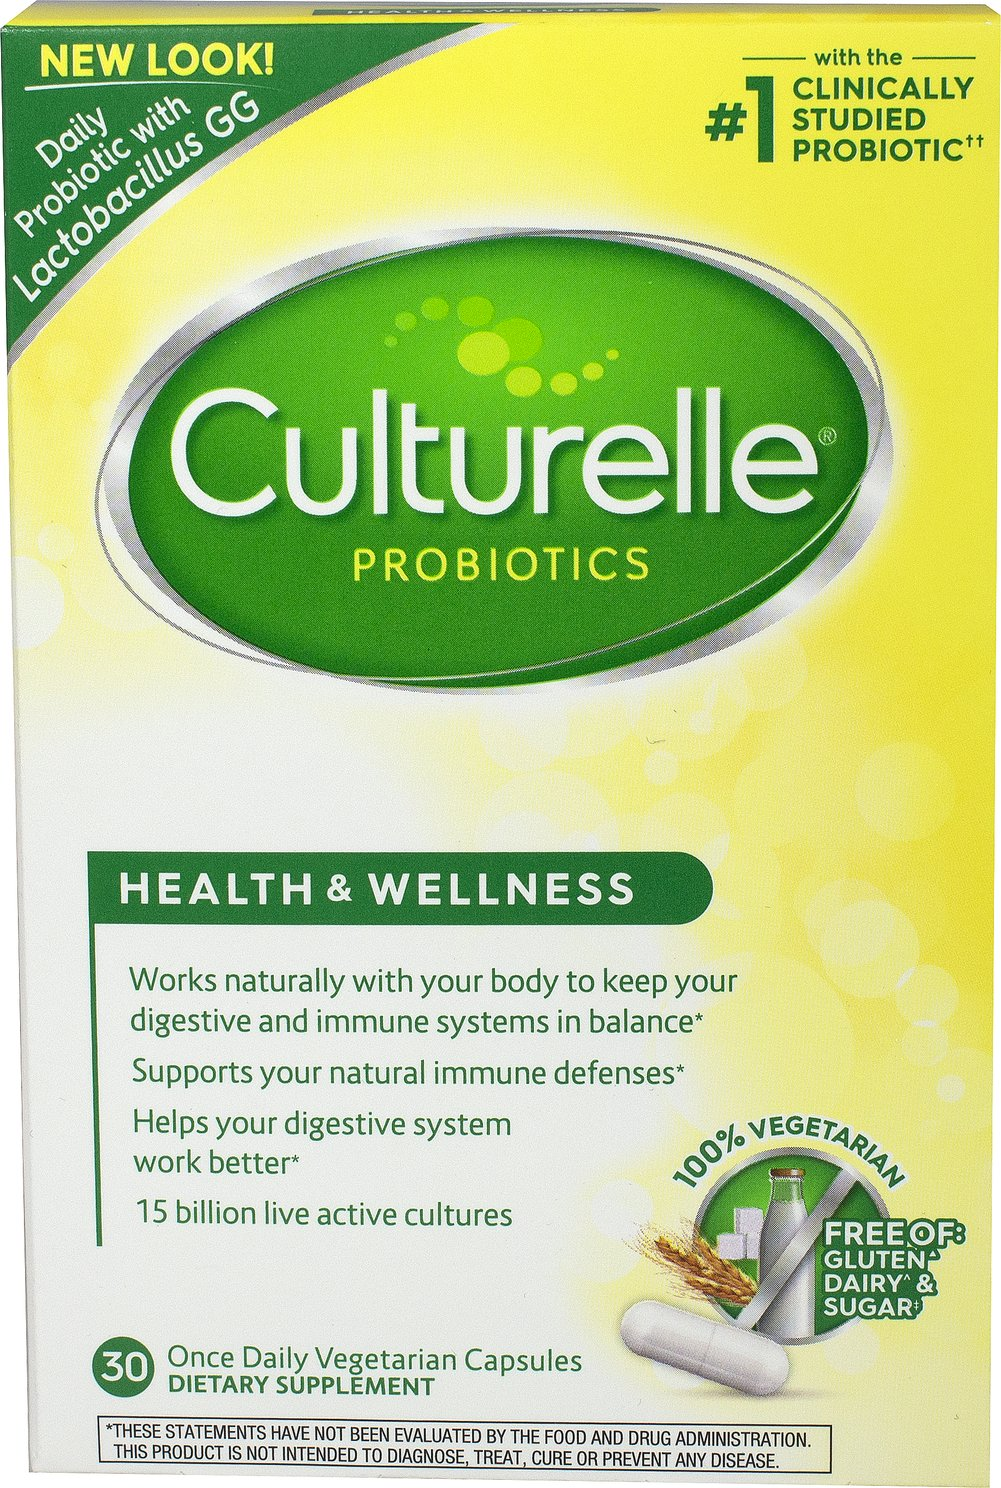 Culturelle® Probiotic <p><strong>From the Manufacturer's Label: </strong></p><p>Supports your healthy immune system**</p><p>Boosts digestion and overall digestive health**</p><p>Restores the natural balance of good bacteria in your digestive tract**</p> 30 Capsules 10 billion $17.99